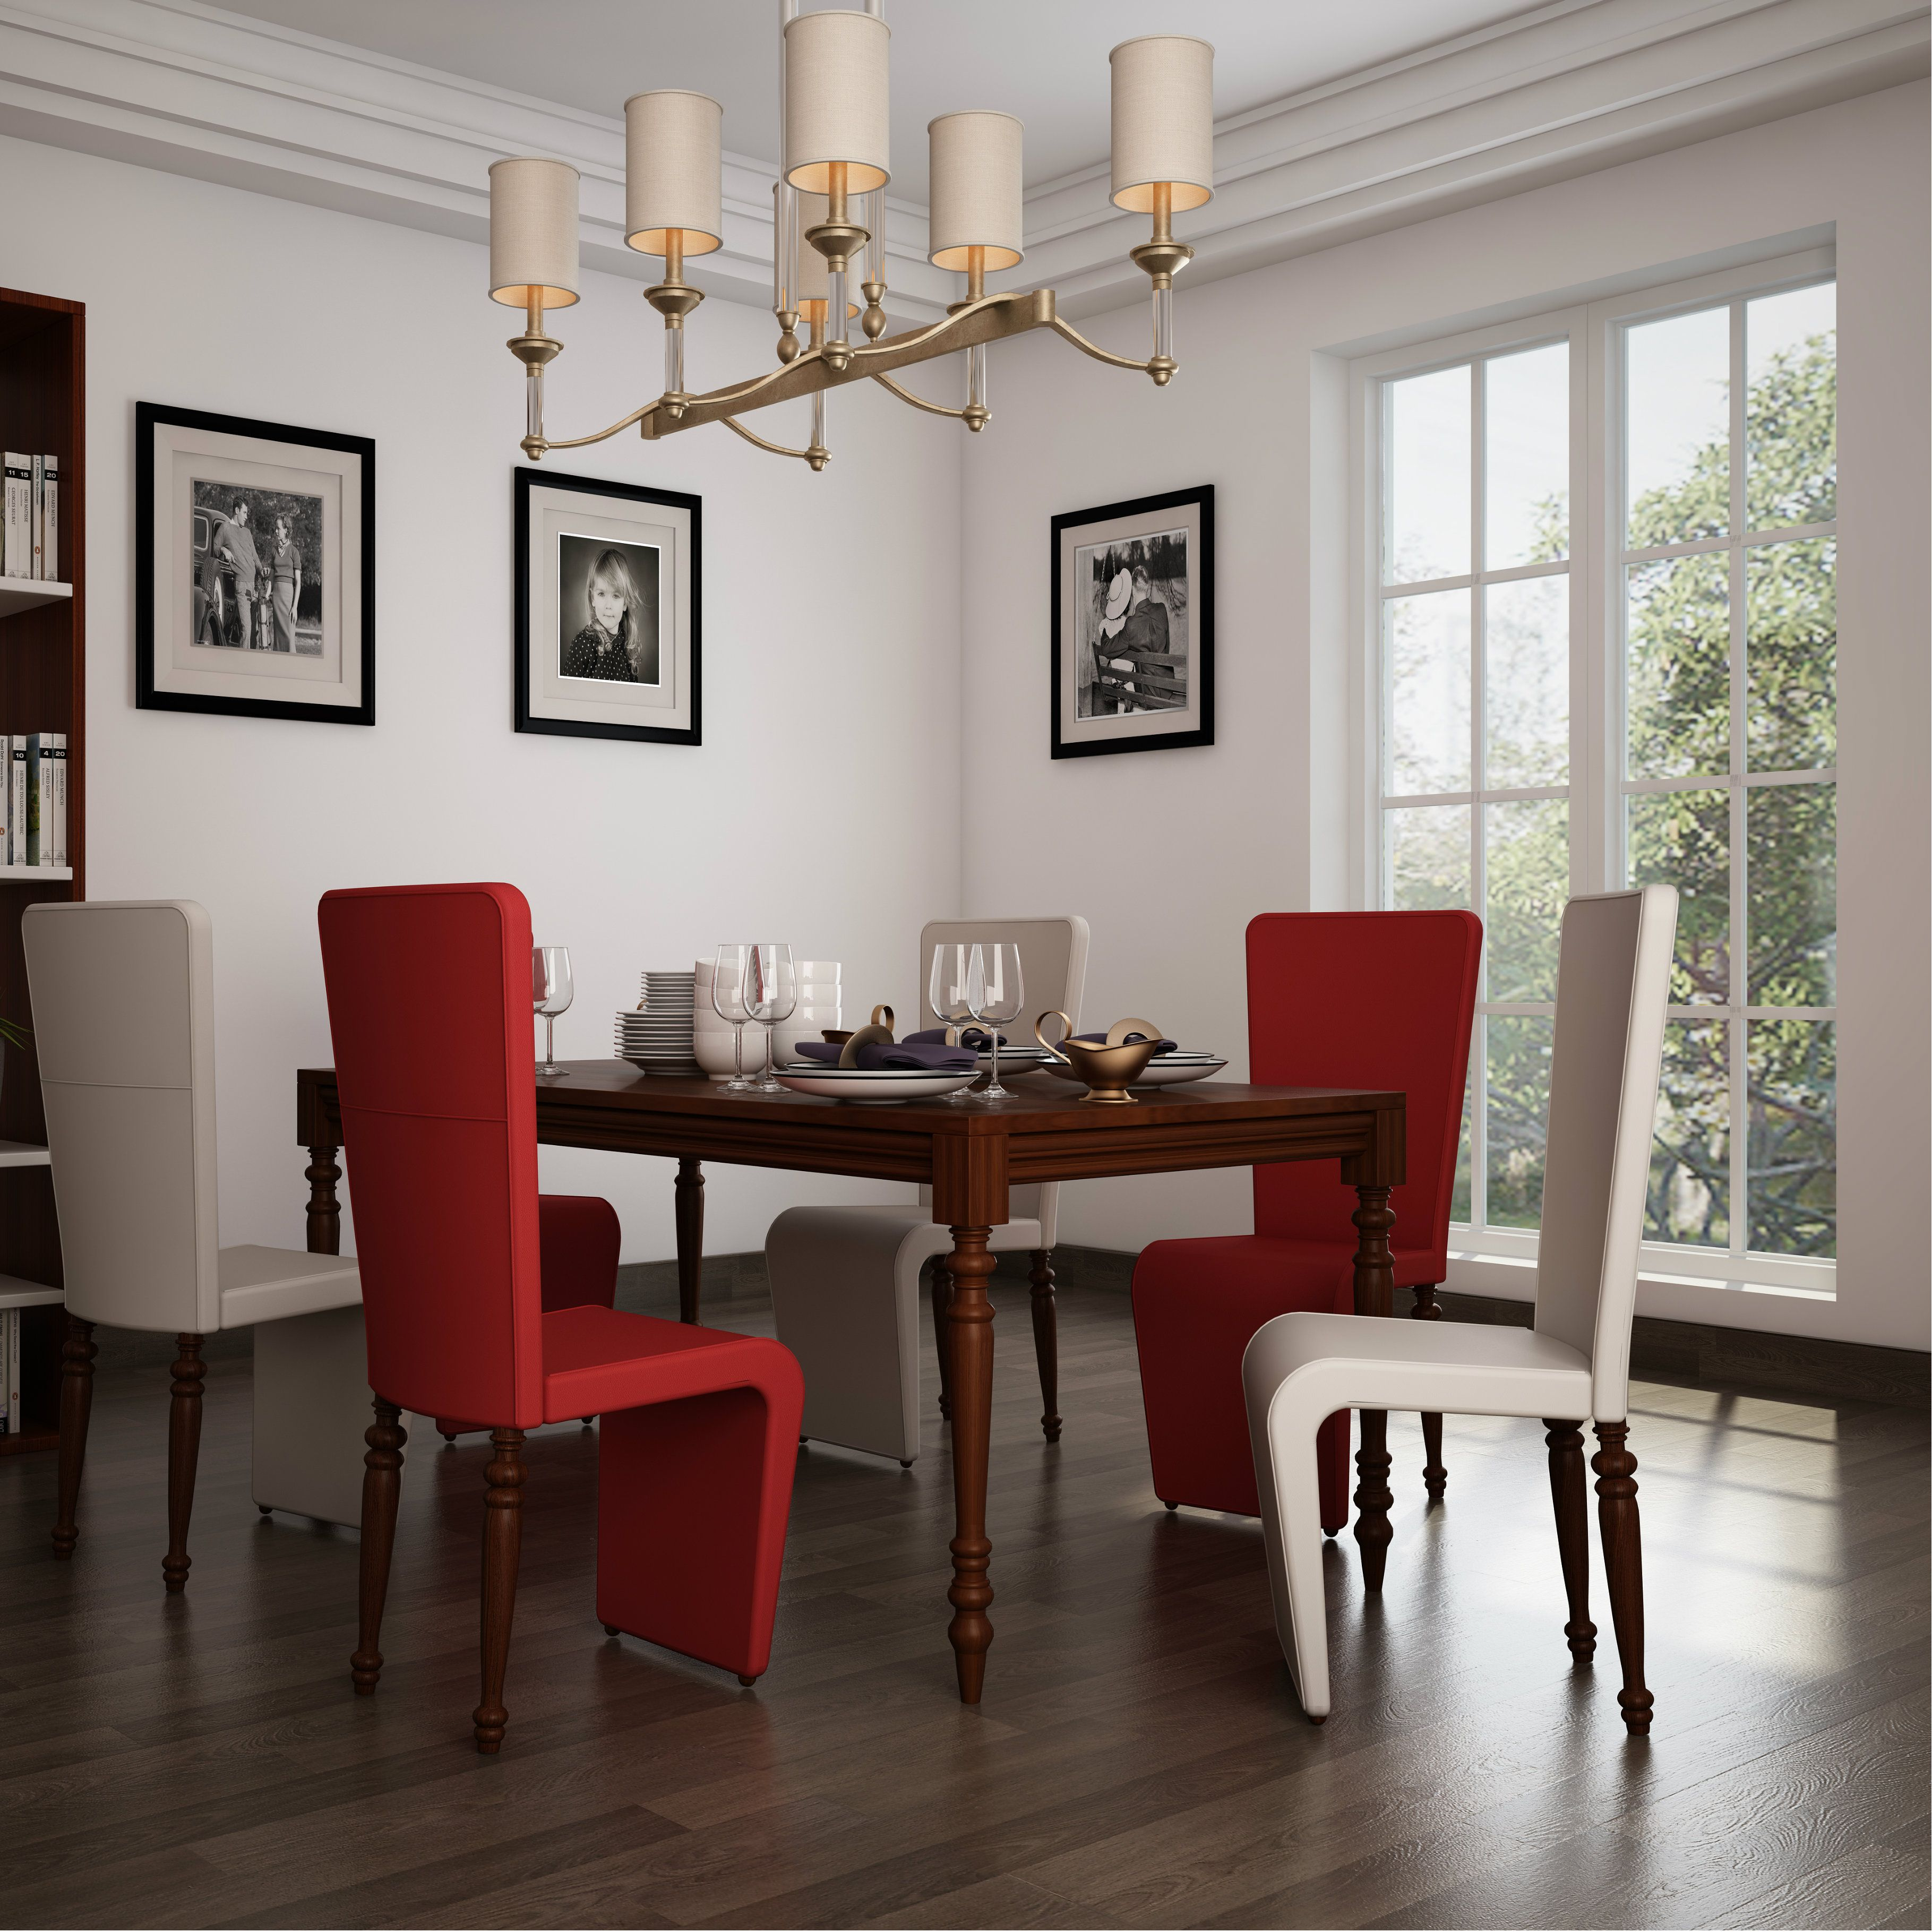 Small Indianhome Design: Red And White Dining Chairs To Break The Monotonous White